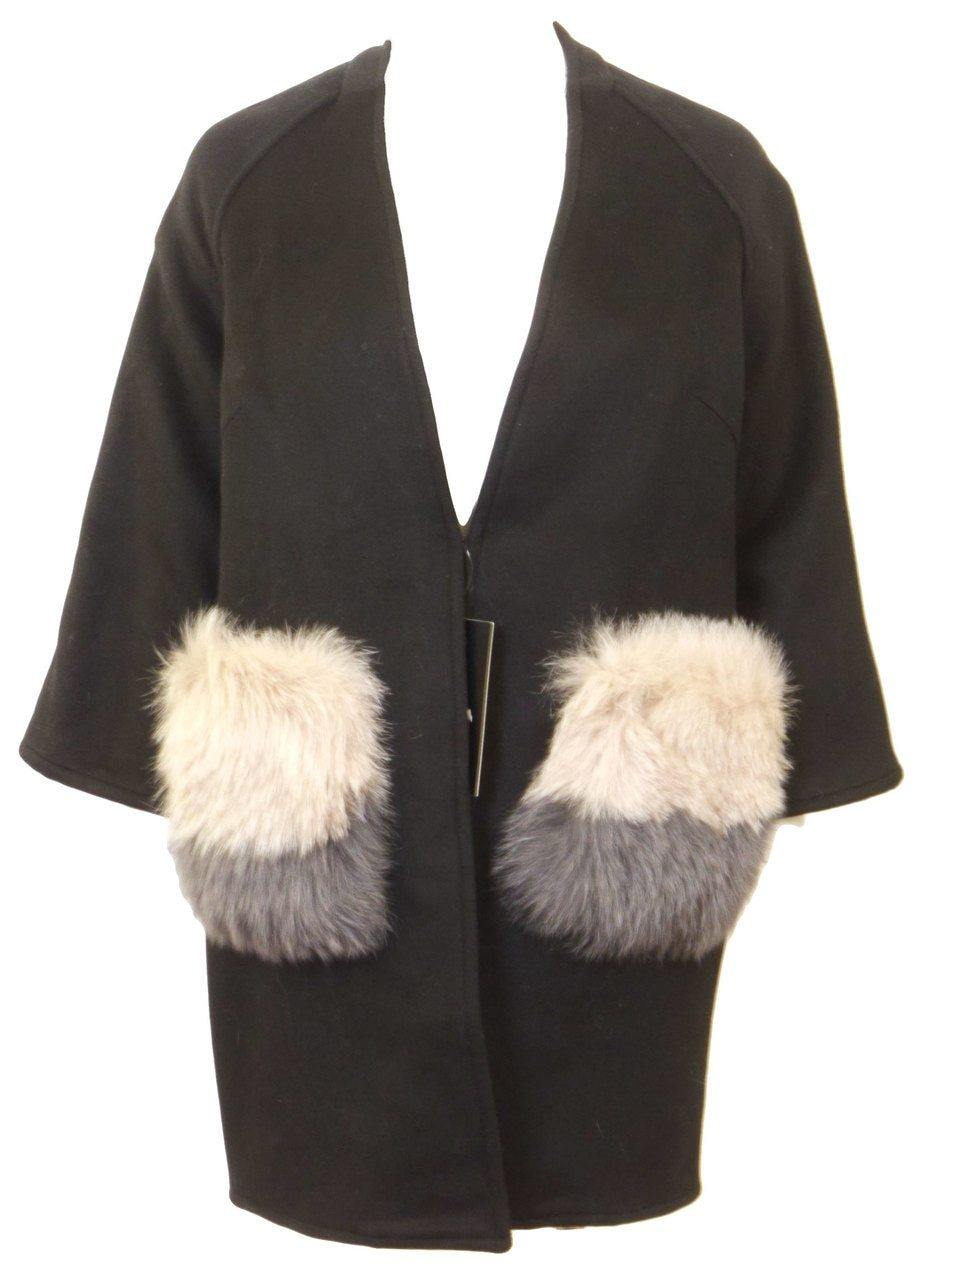 Wear & Flair Prada Fur Pocket Jacket